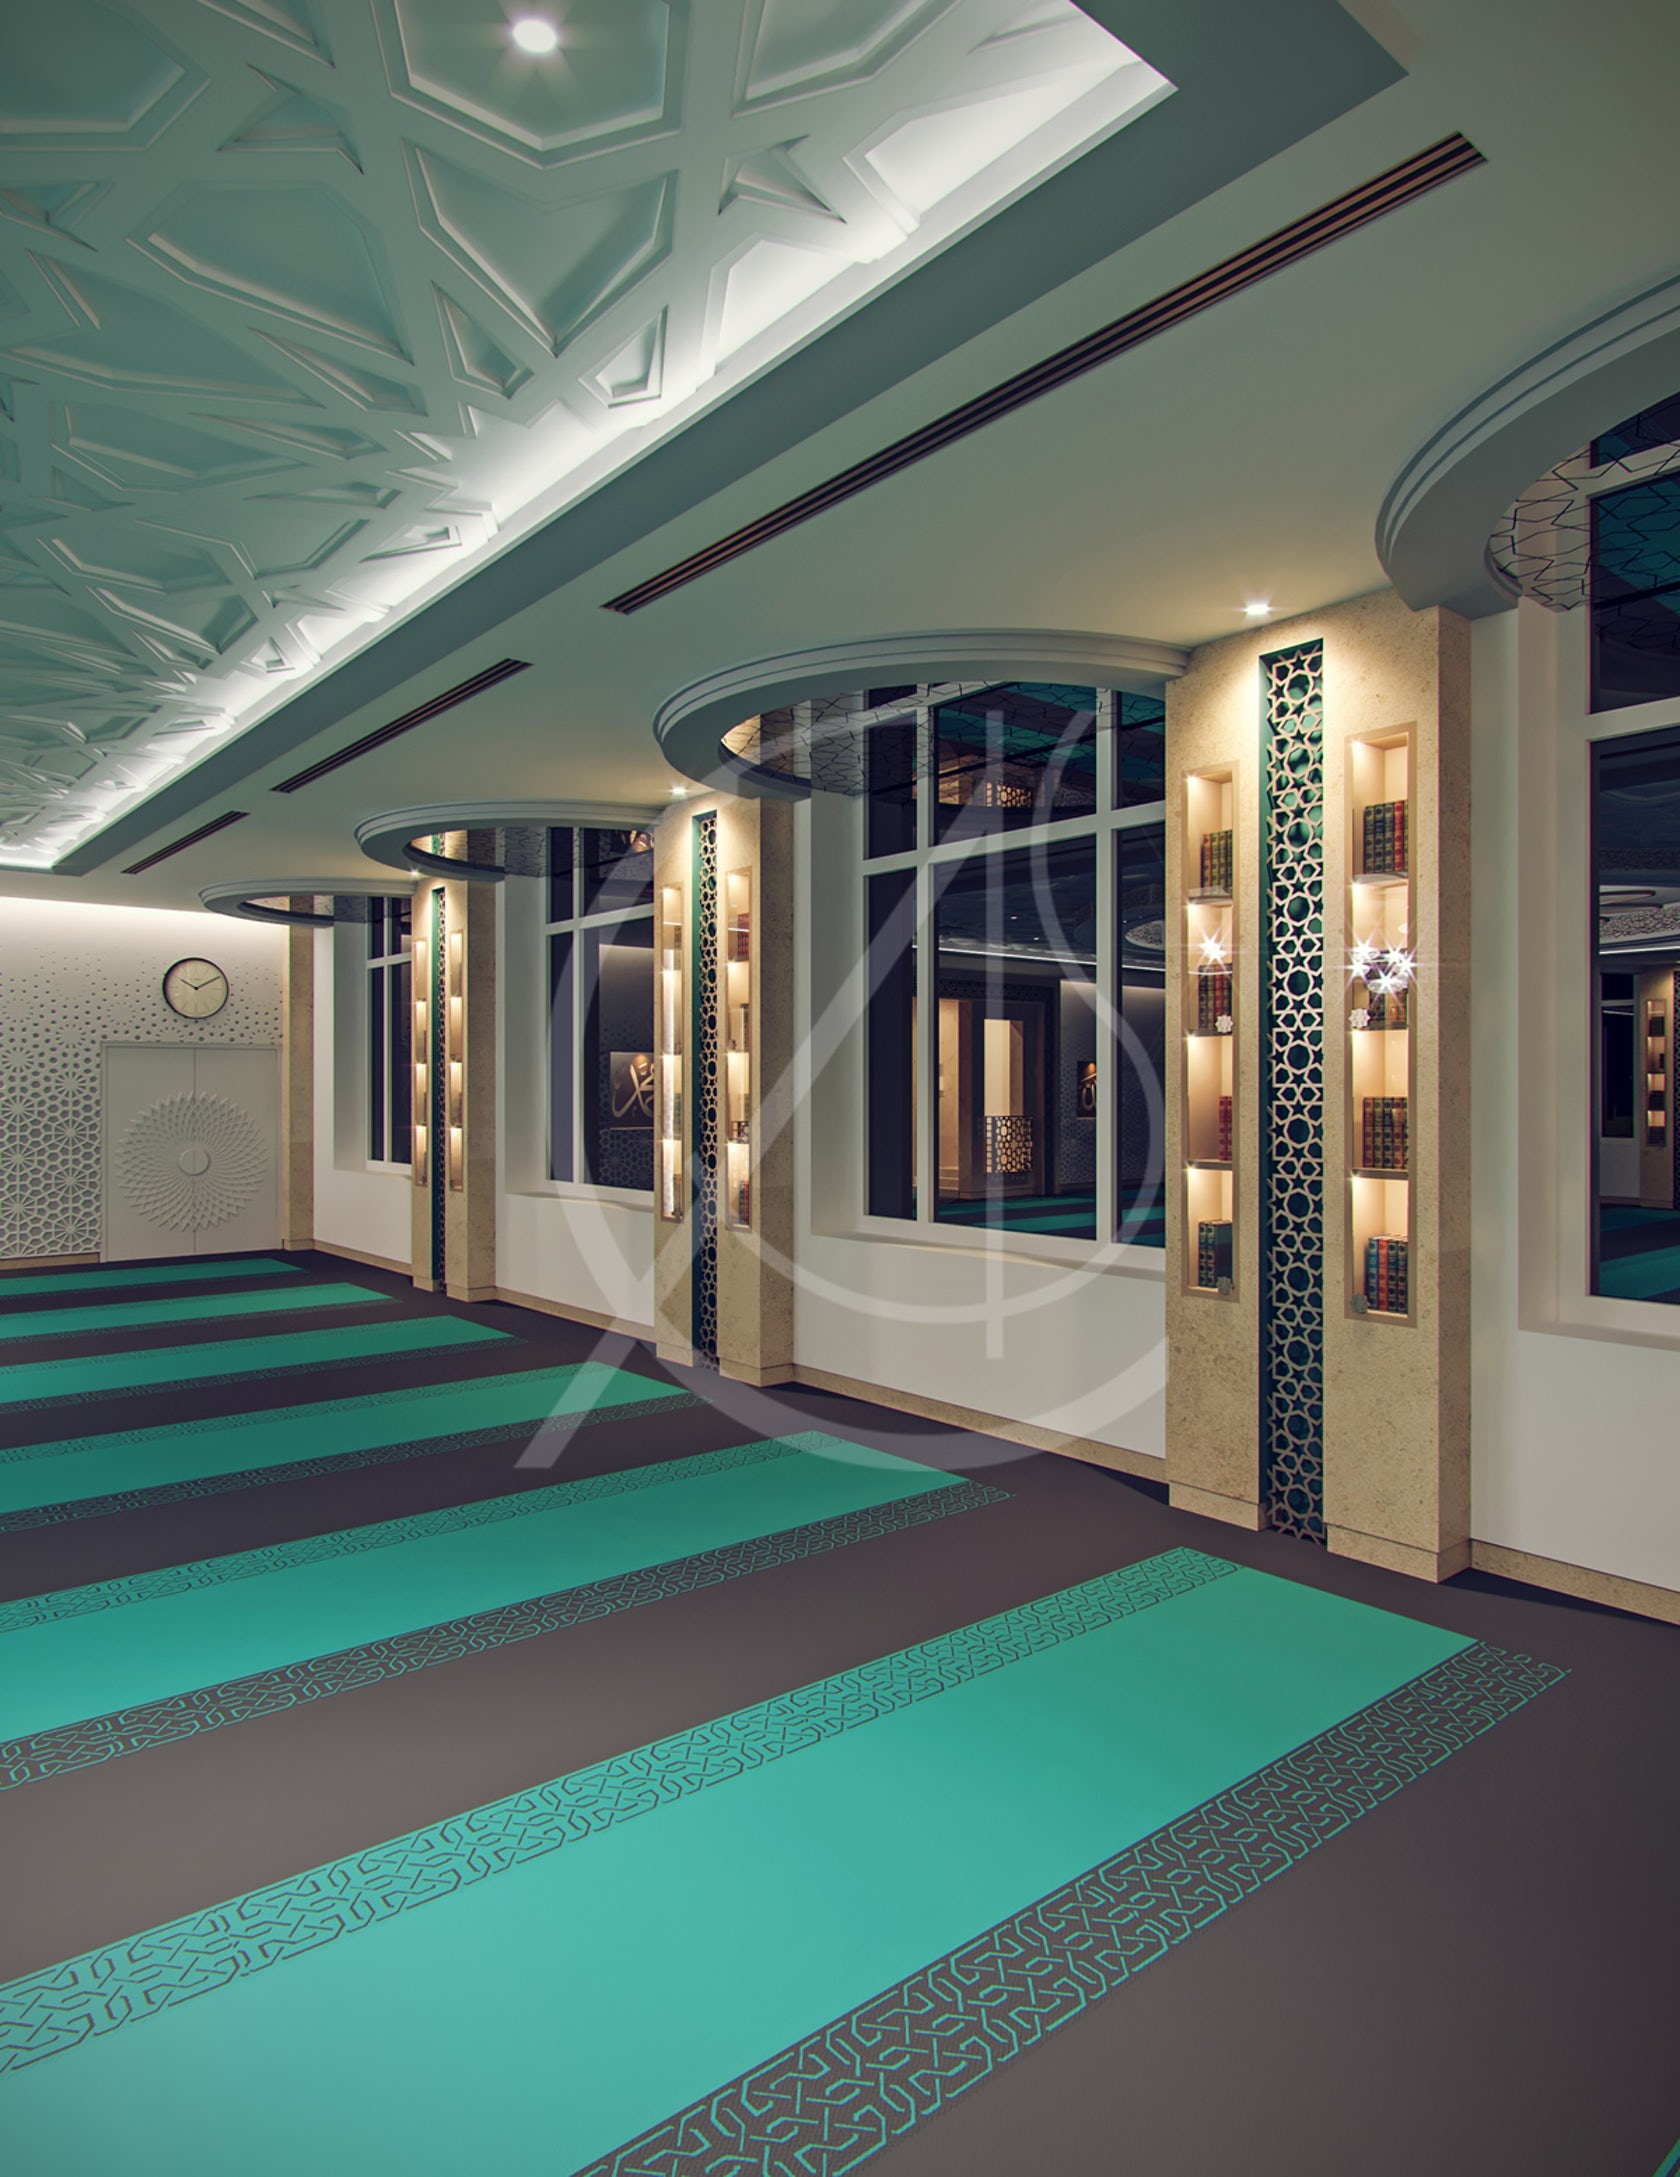 Leicester modern islamic mosque interior design architizer - What is contemporary style ...